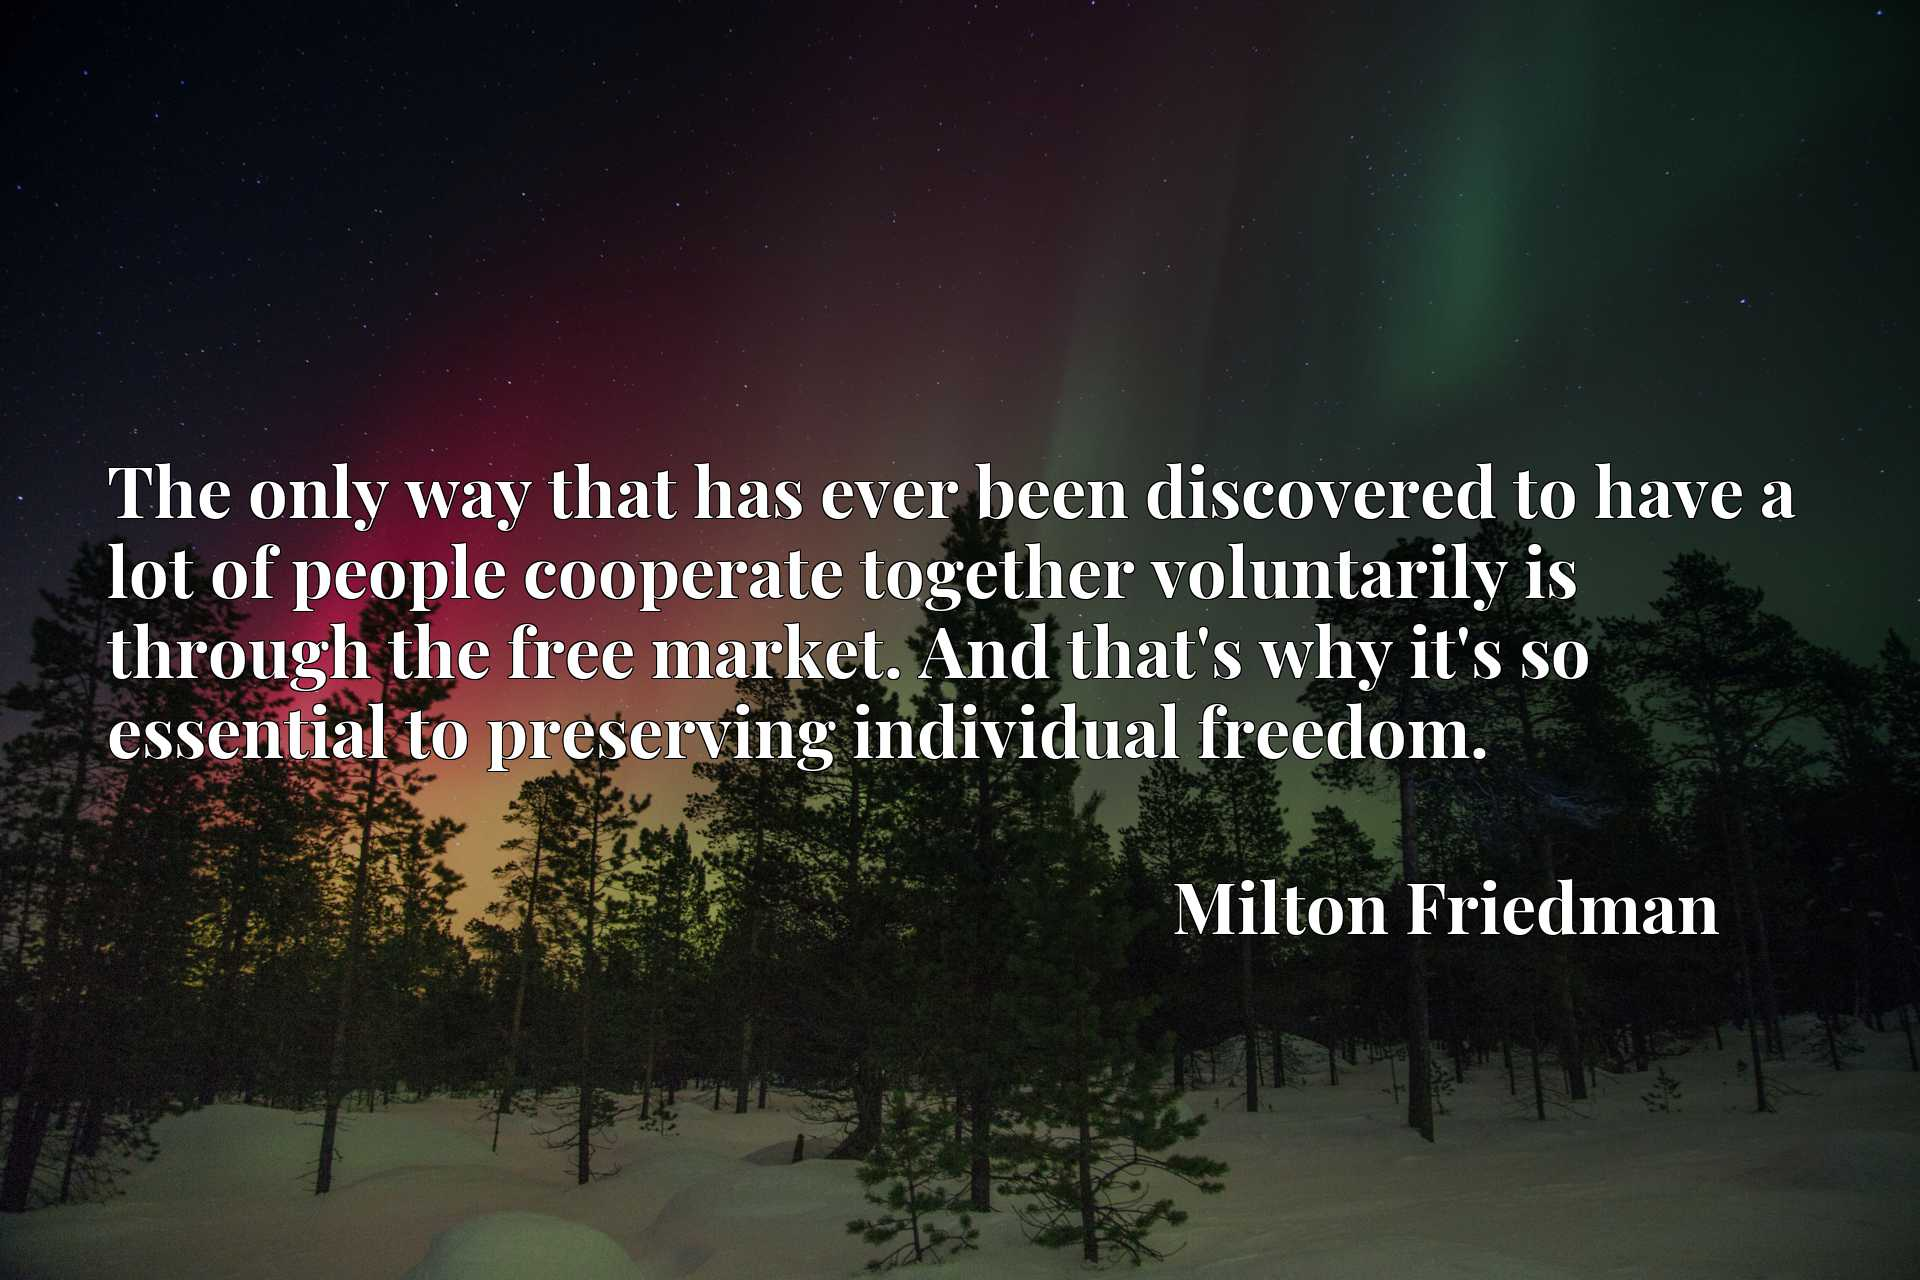 The only way that has ever been discovered to have a lot of people cooperate together voluntarily is through the free market. And that's why it's so essential to preserving individual freedom.